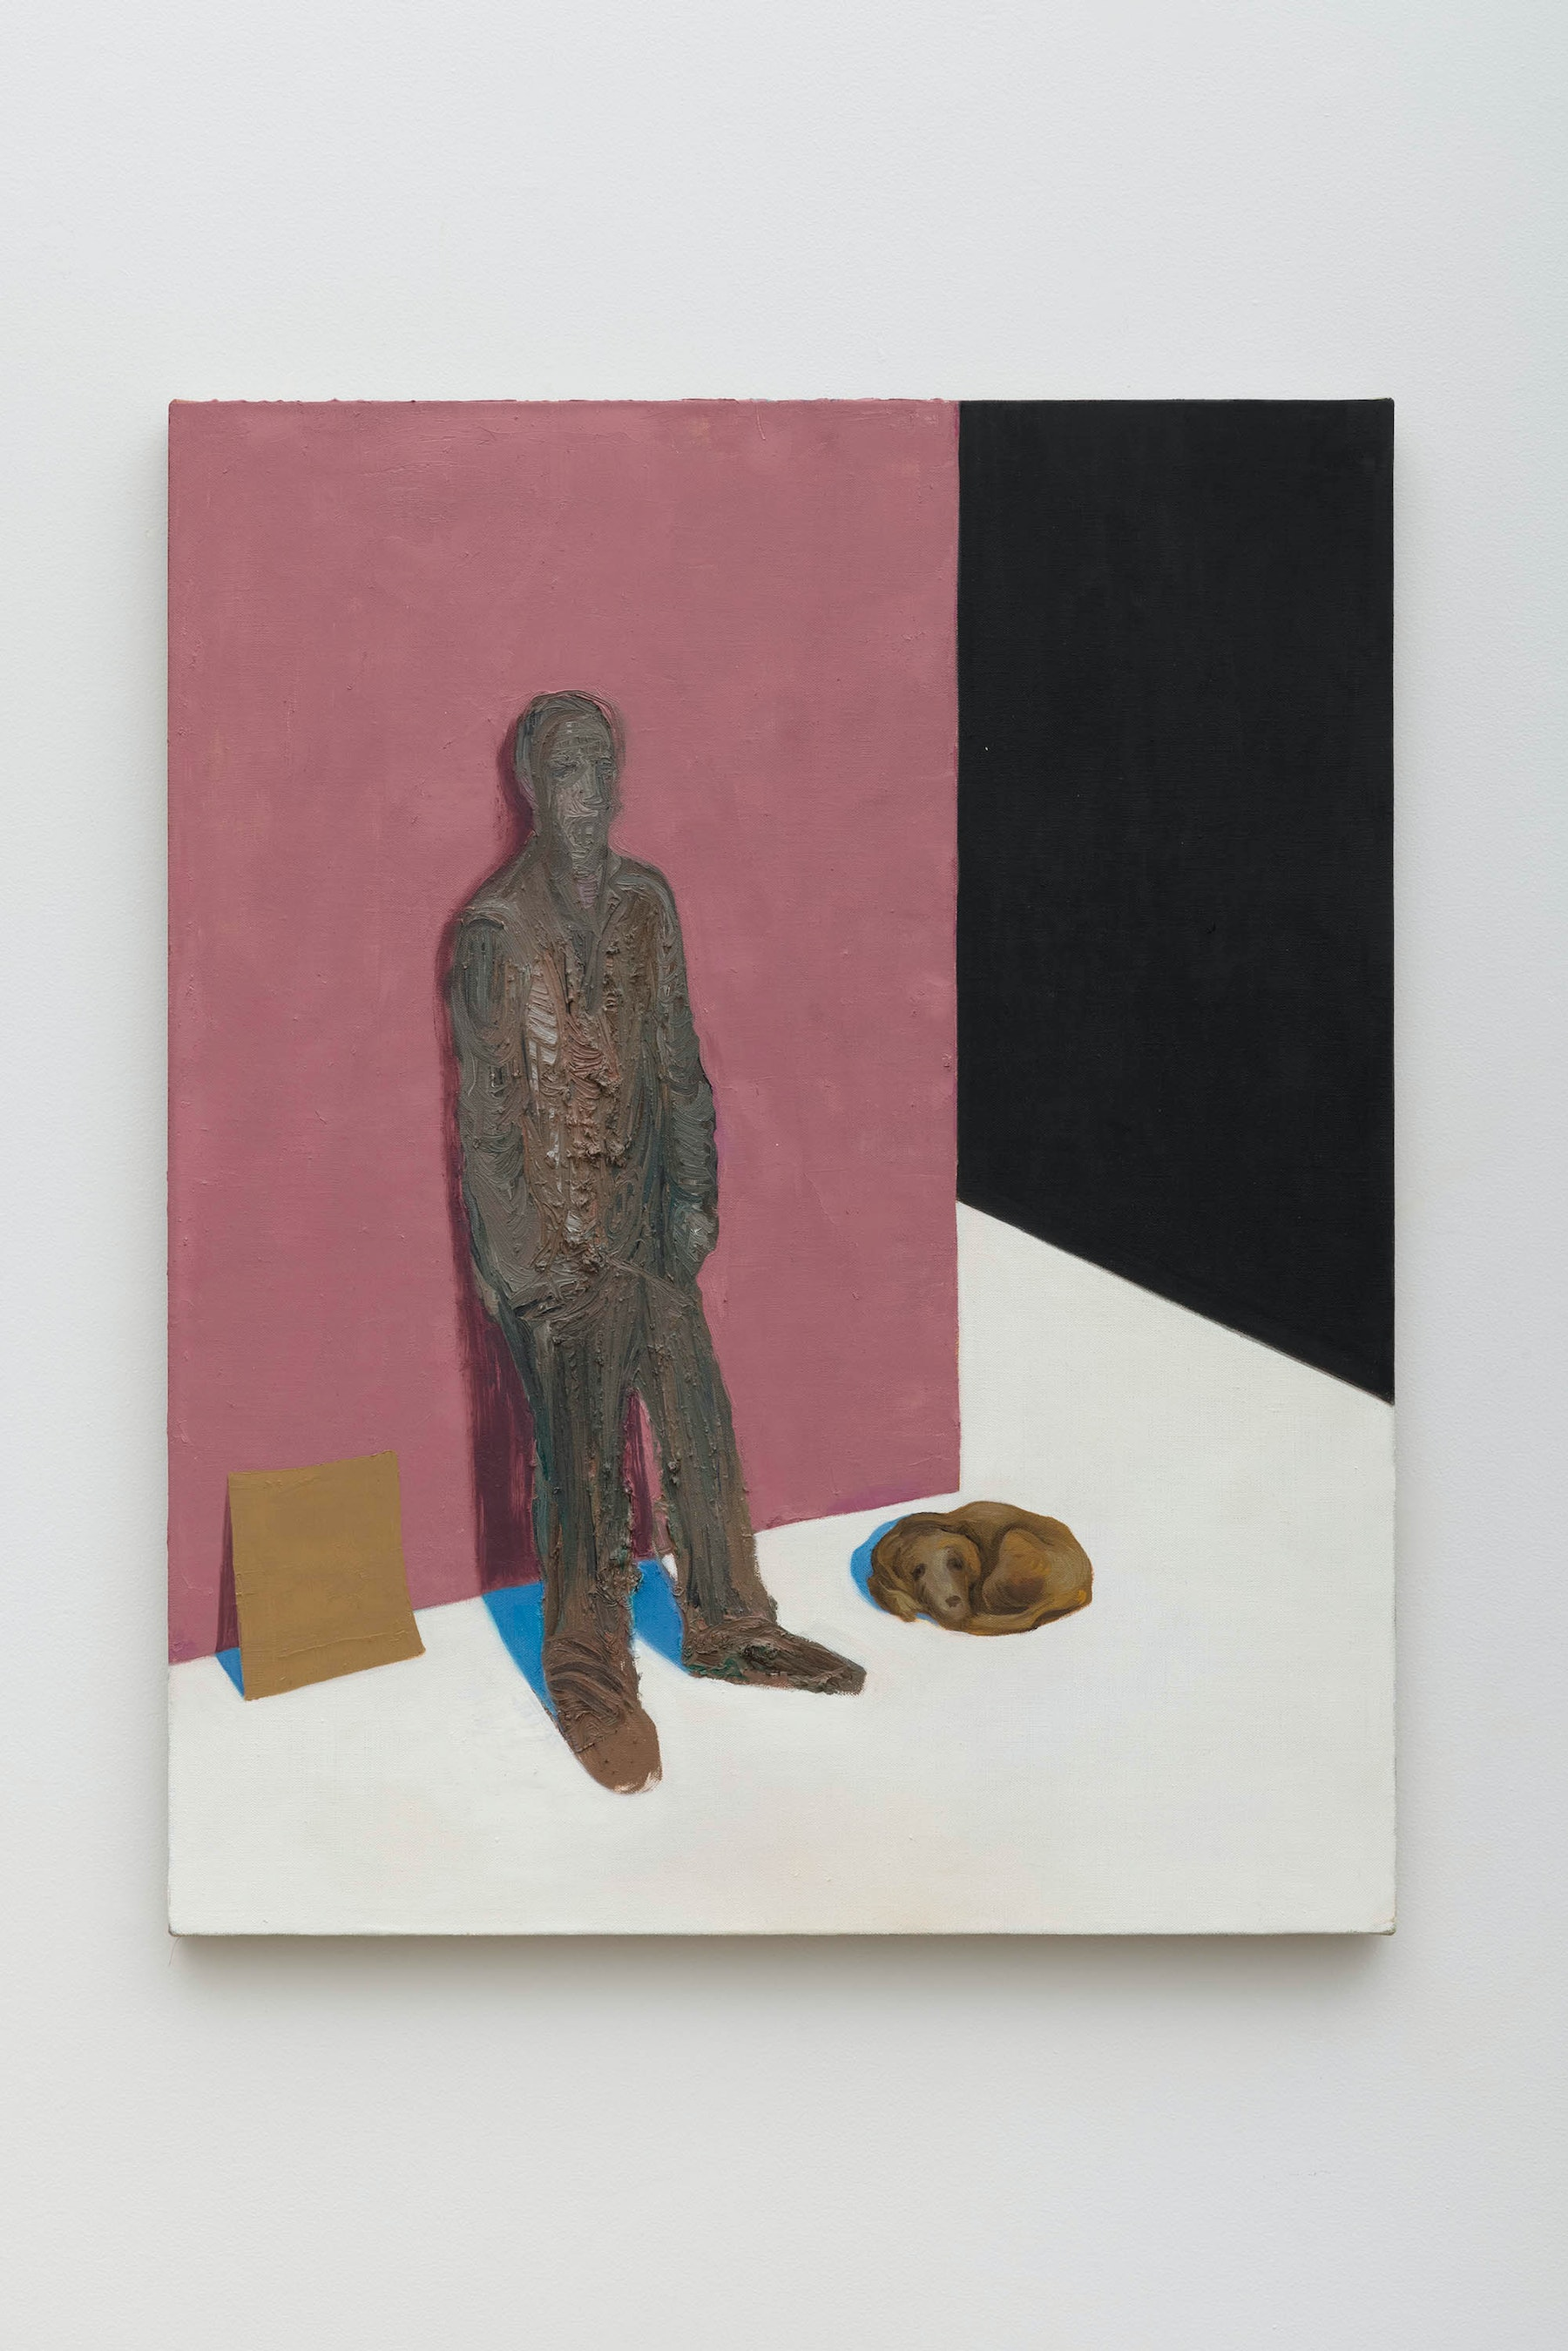 """Nicole Eisenman """"Empty City (with Man in Need),"""" 2020 Oil on linen 30"""" x 24"""" x 1"""" [HxWxD] (76.2 x 60.96 x 2.54 cm) Inventory #EIS600 Courtesy of the artist and Vielmetter Los Angeles Photo credit: Jeff McLane"""